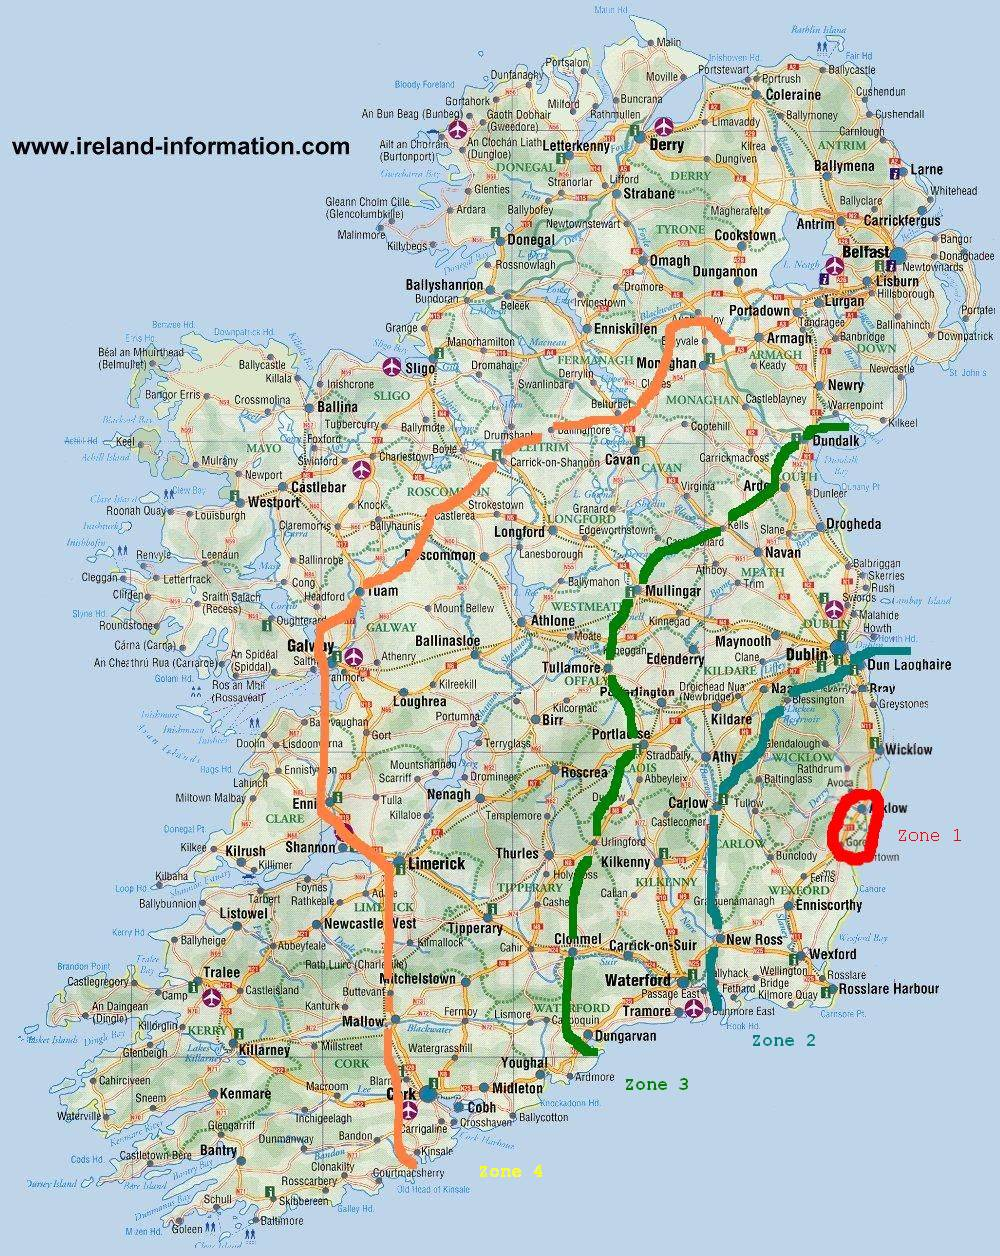 map of our travel zones in Ireland, thanks to www.ireland-information.com